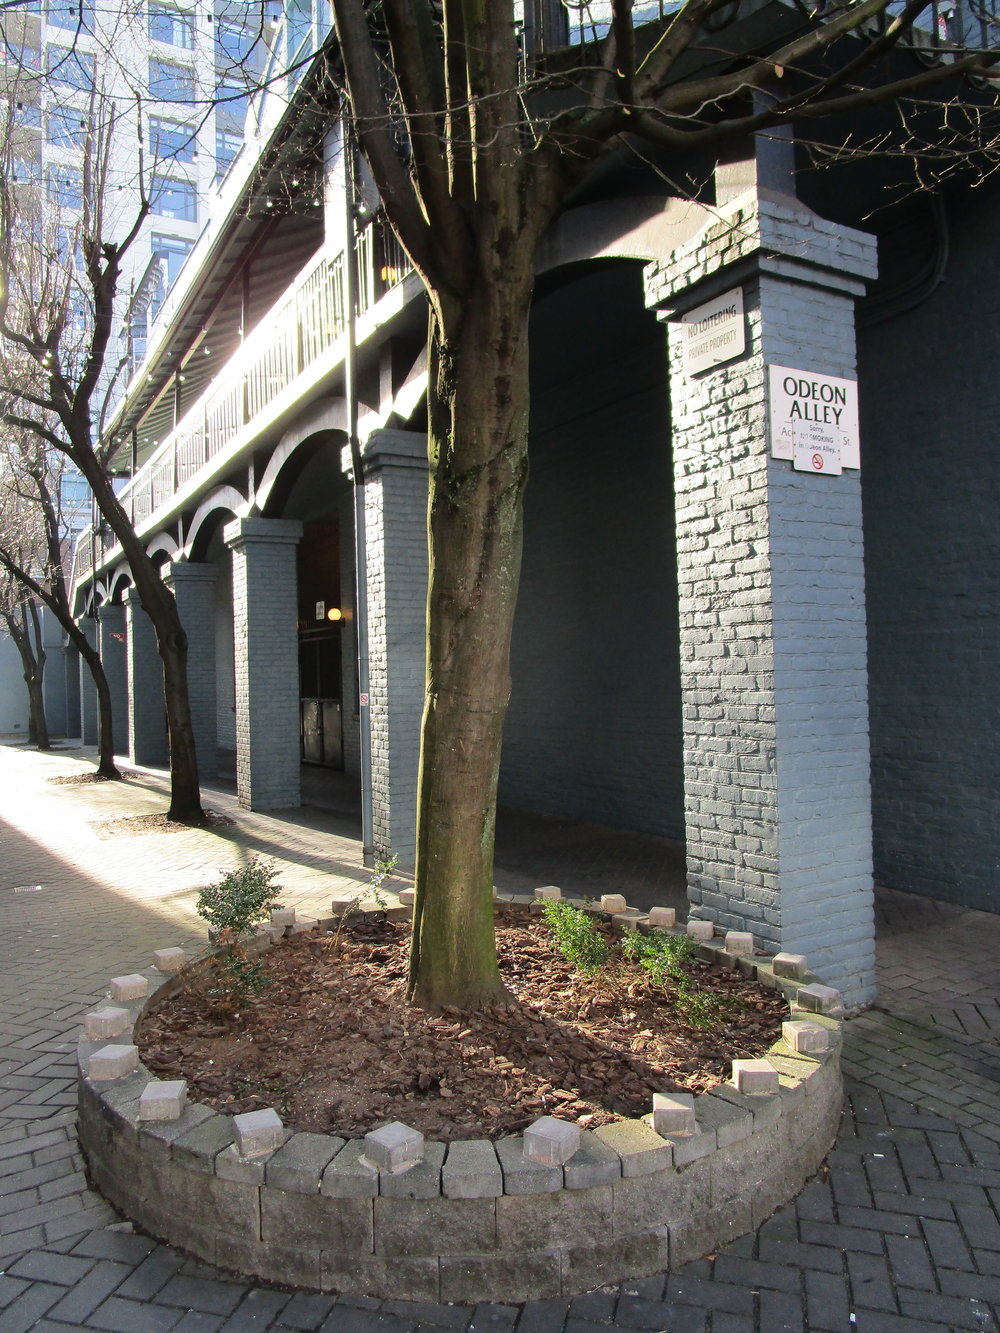 Different parts of Odeon Alley are owned by Cineplex Odeon, Concert Properties, and the City of Victoria.